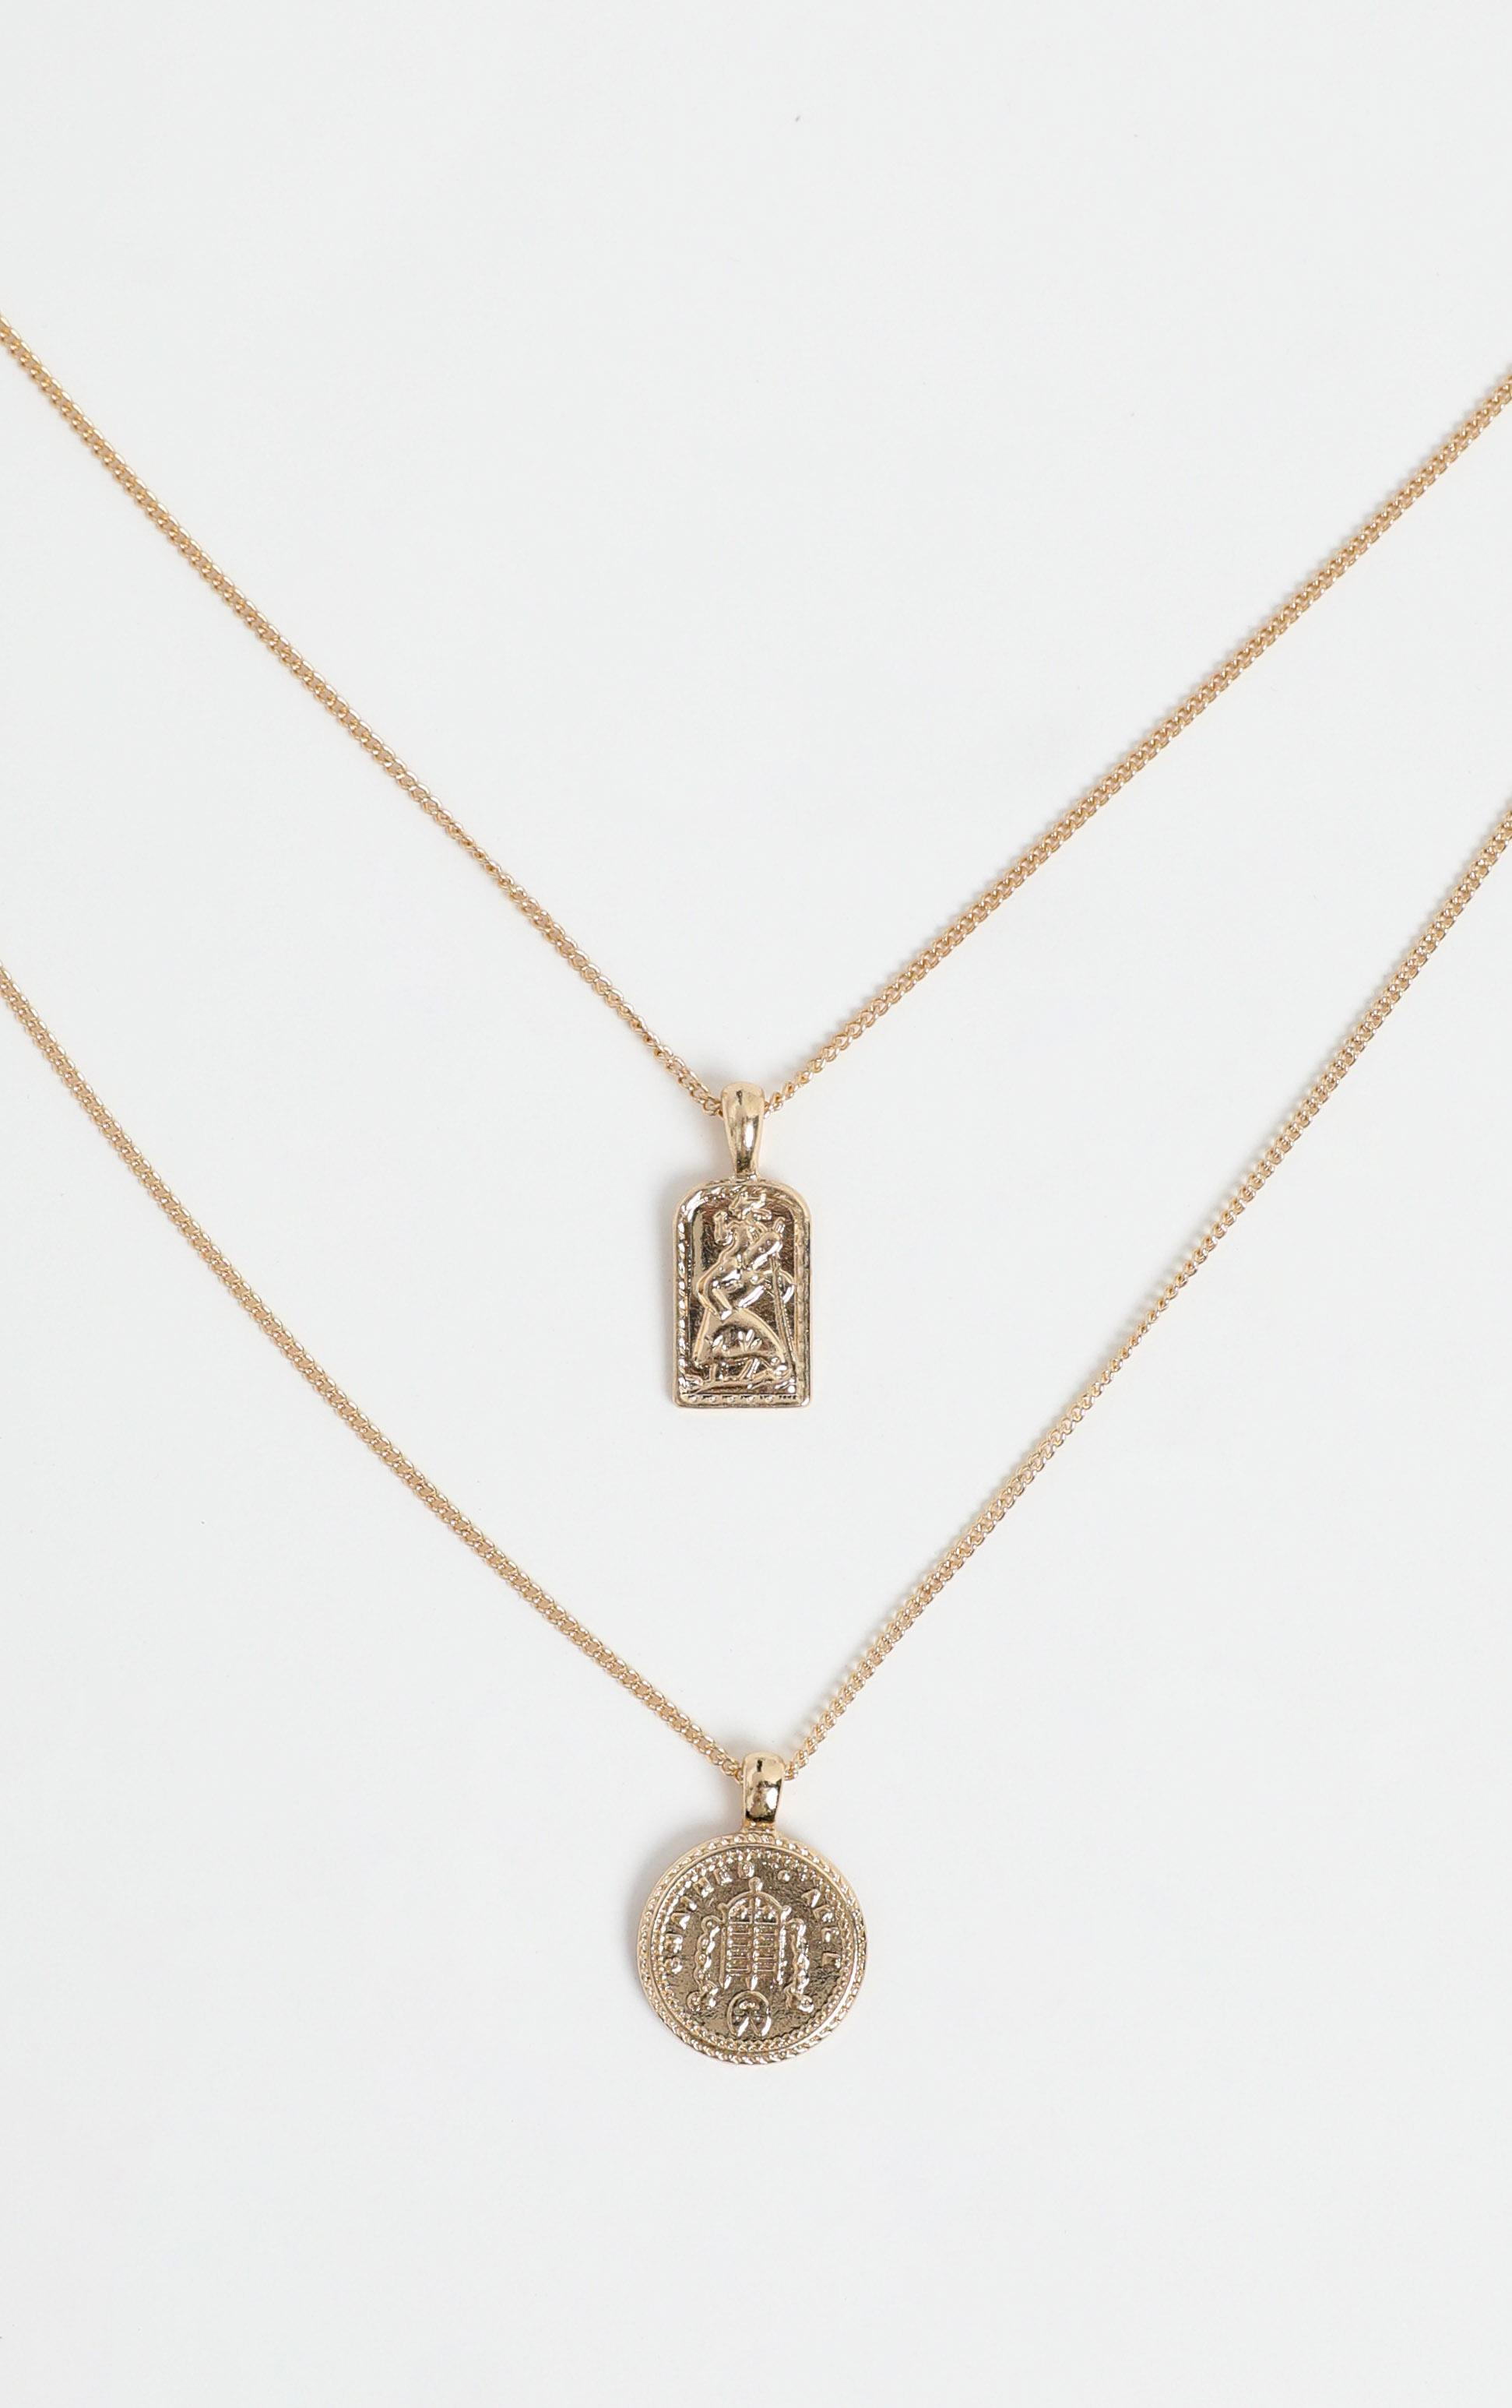 Nyssa Layered Necklace in Gold, , hi-res image number null